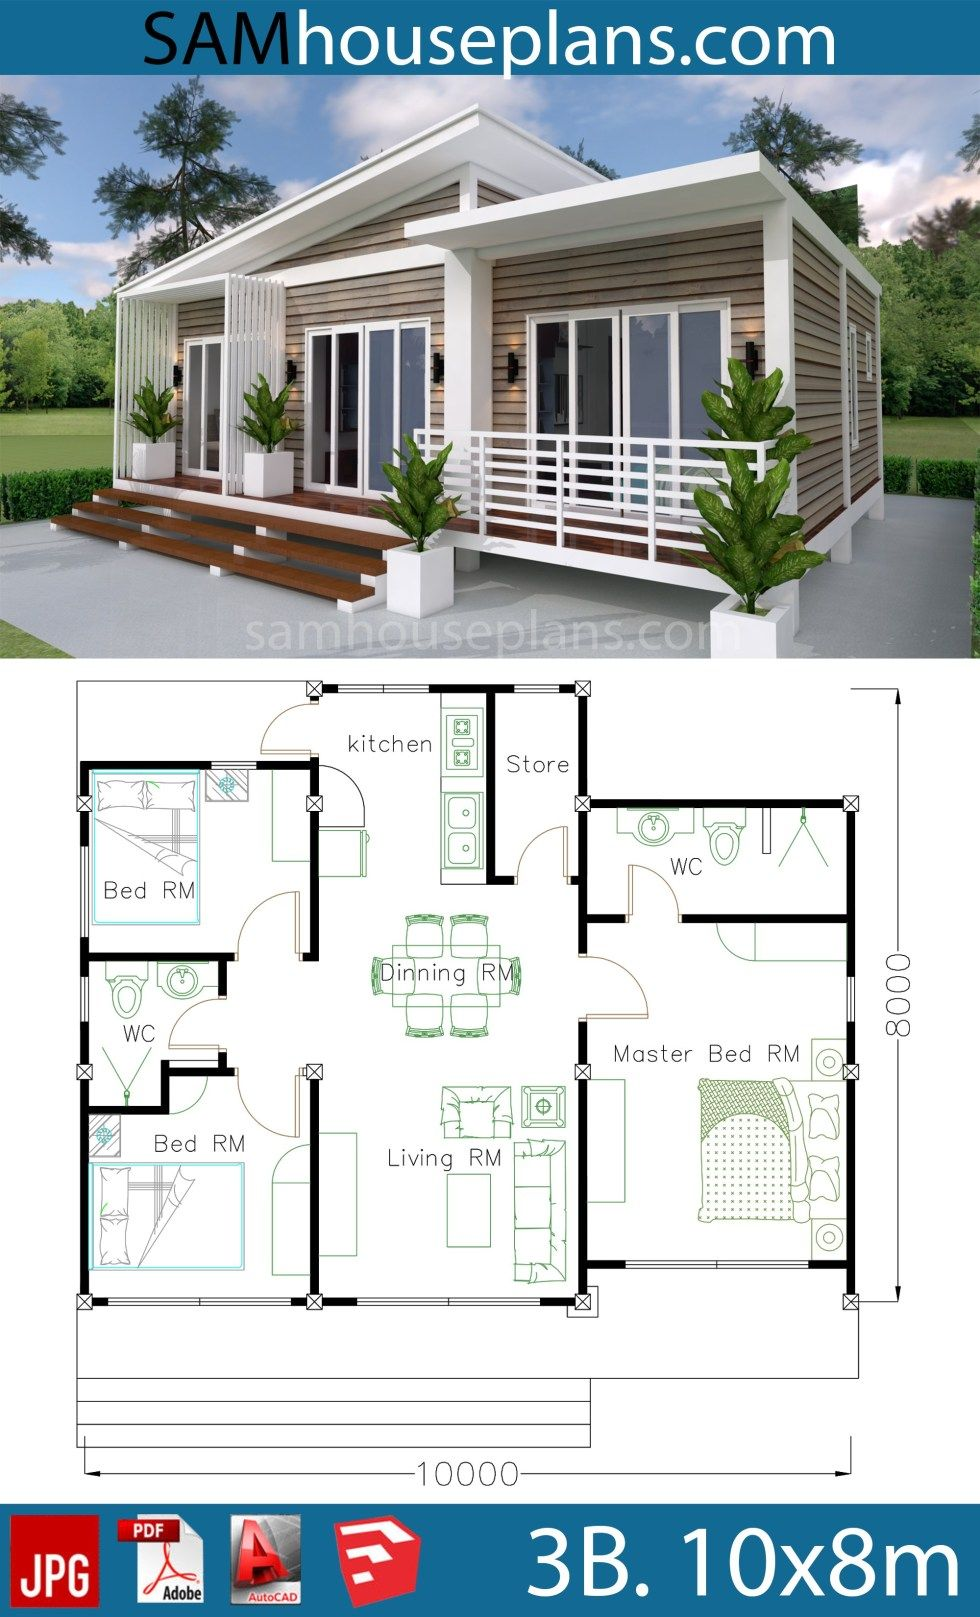 House Plans 10x8m With 3 Bedrooms In 2020 Affordable